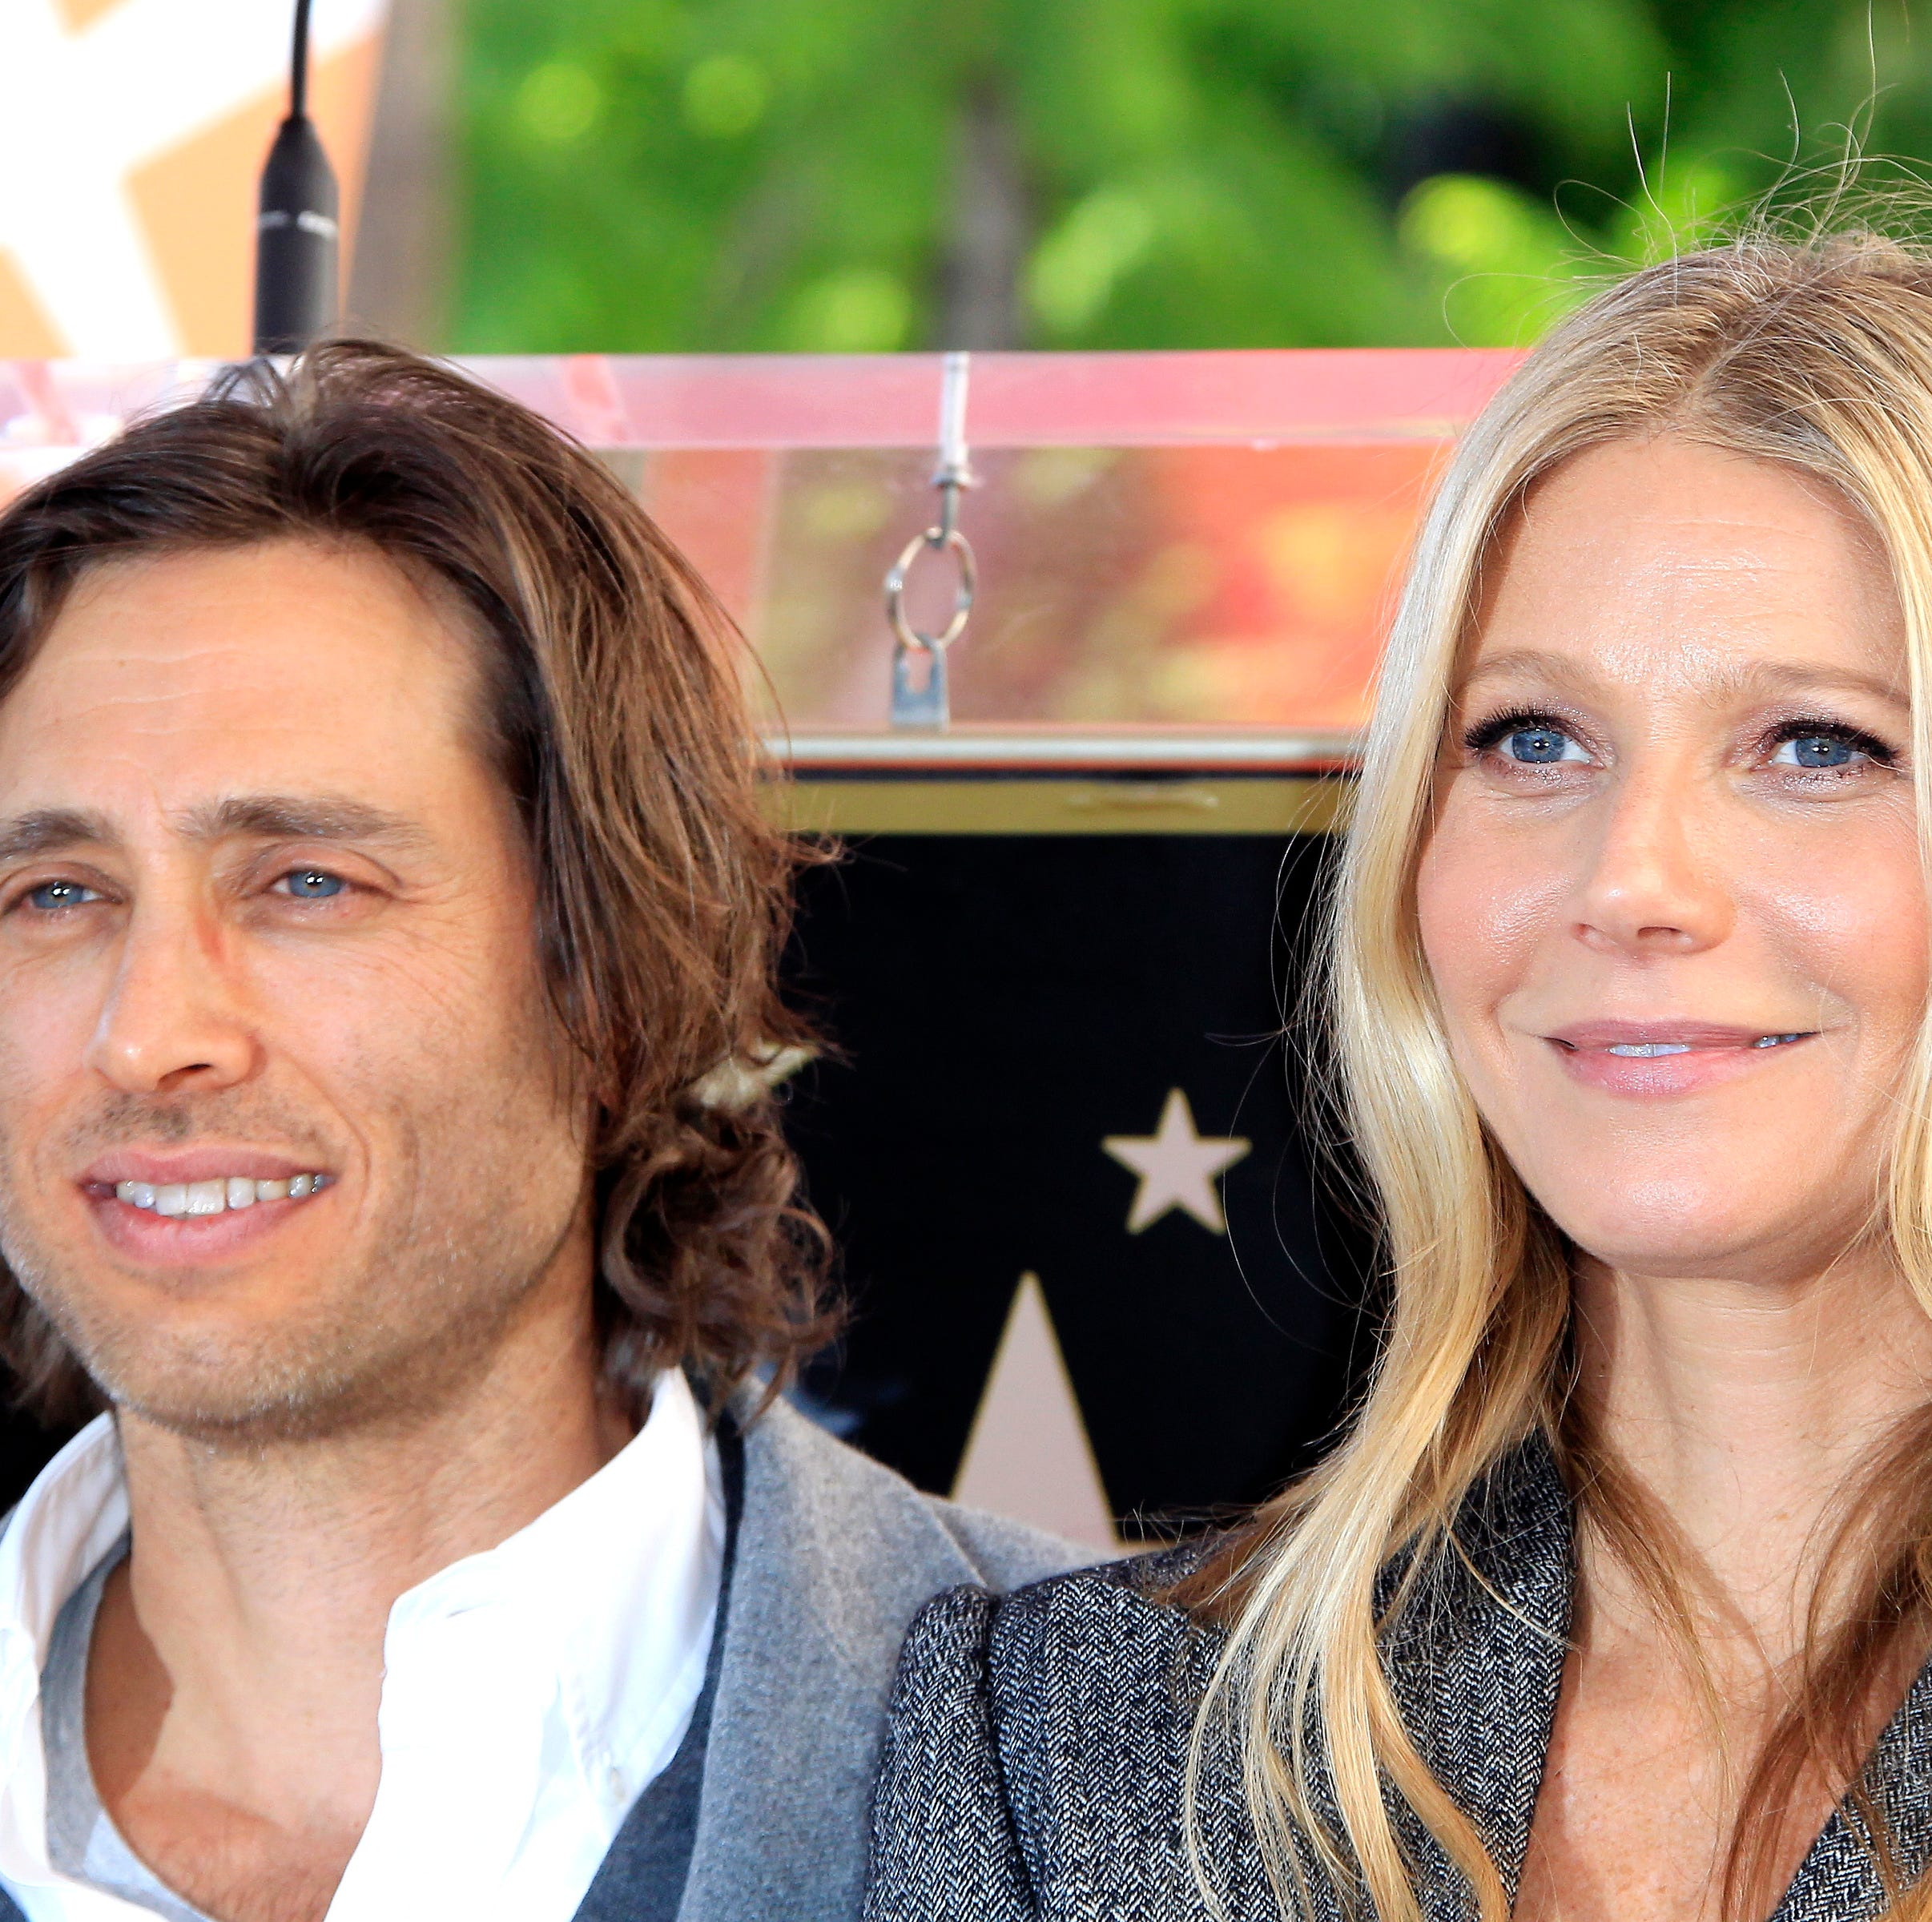 US actress Gwyneth Paltrow (R) and husband US director Brad Falchuk (L) during a ceremony where US screenwriter, television producer, director Ryan Murphy receives the 2653rd star on the Hollywood Walk of Fame in Hollywood, California, USA 04 December 2018.